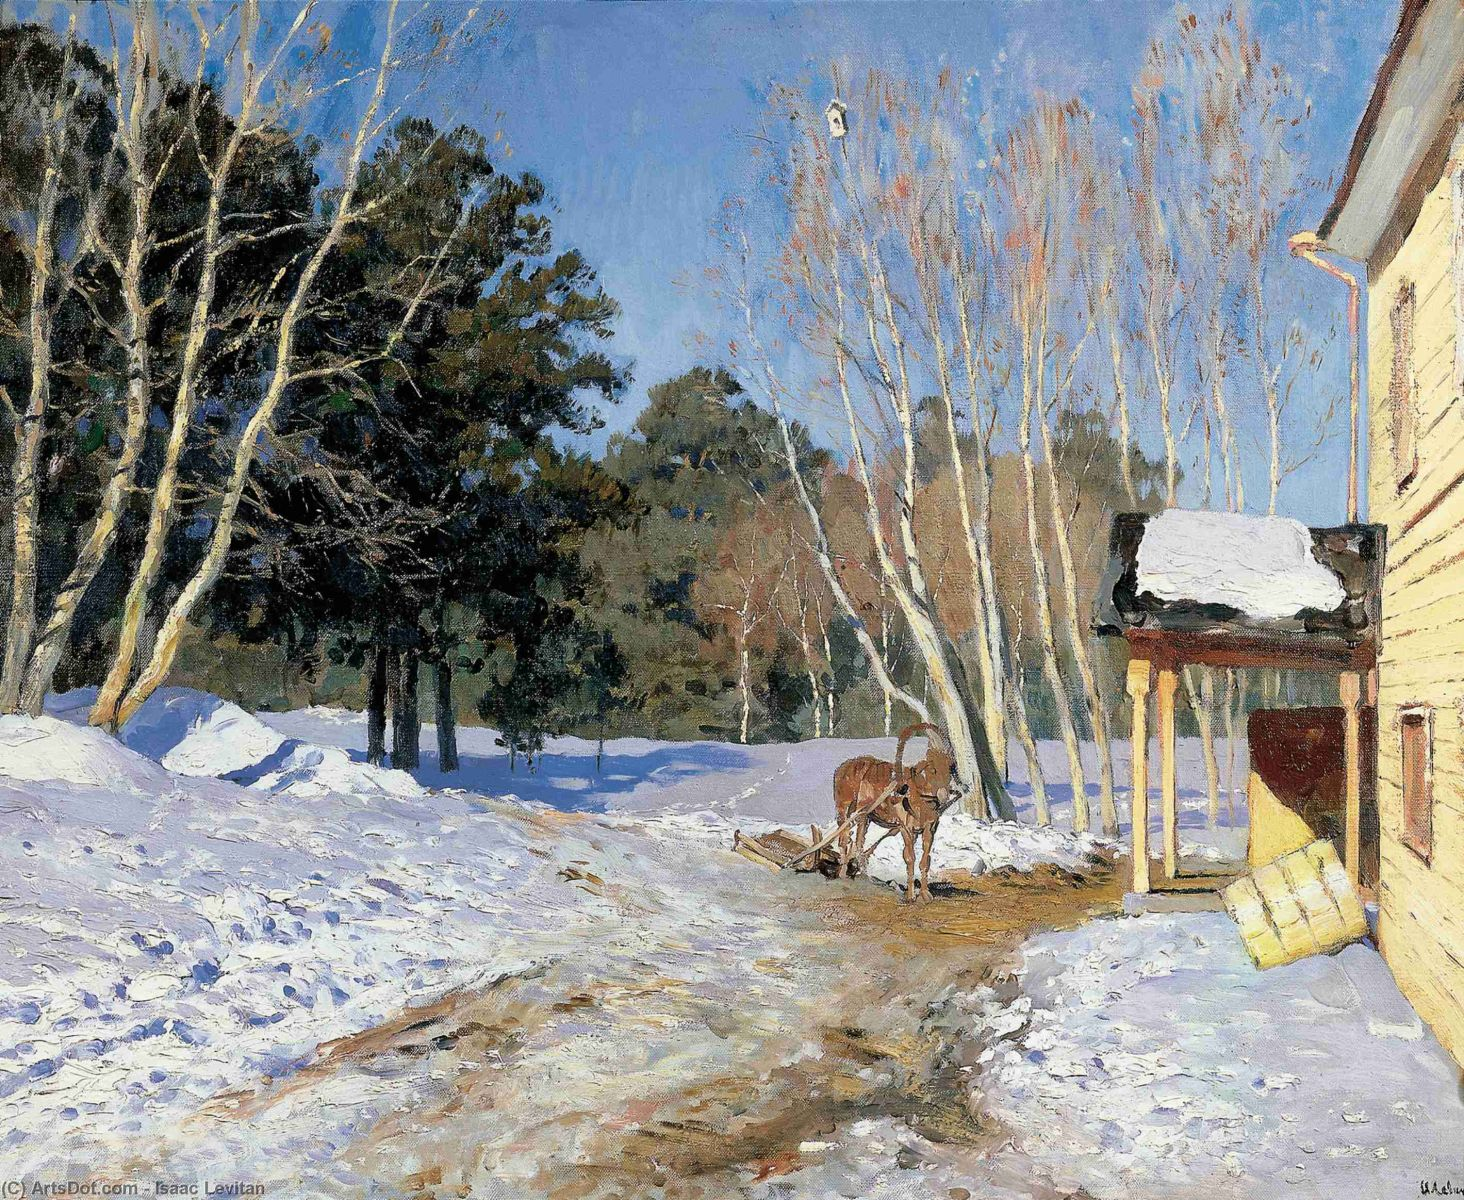 March, Isaac Levitan